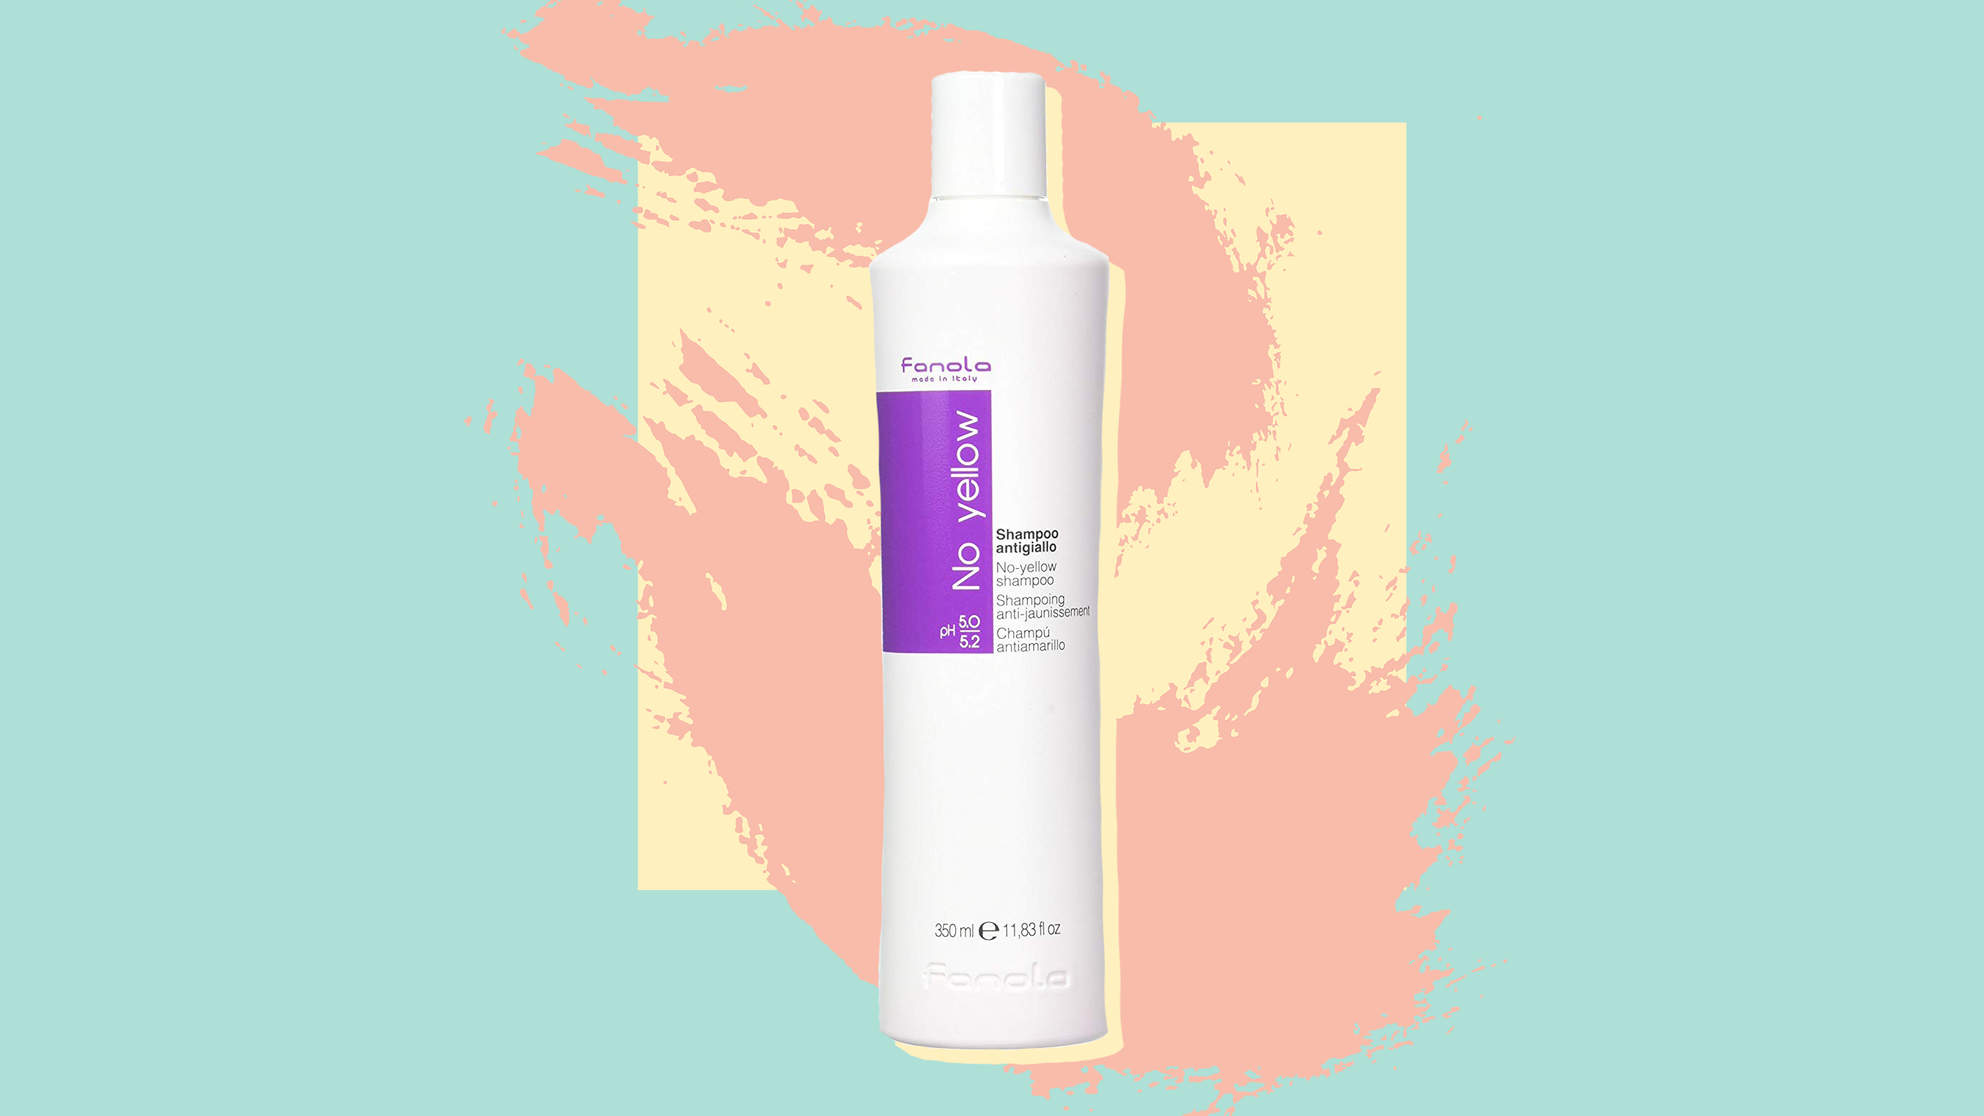 I Wouldn't Be Able to Keep Up With My Blonde Hair Without This Best-Selling $12 Toning Shampoo